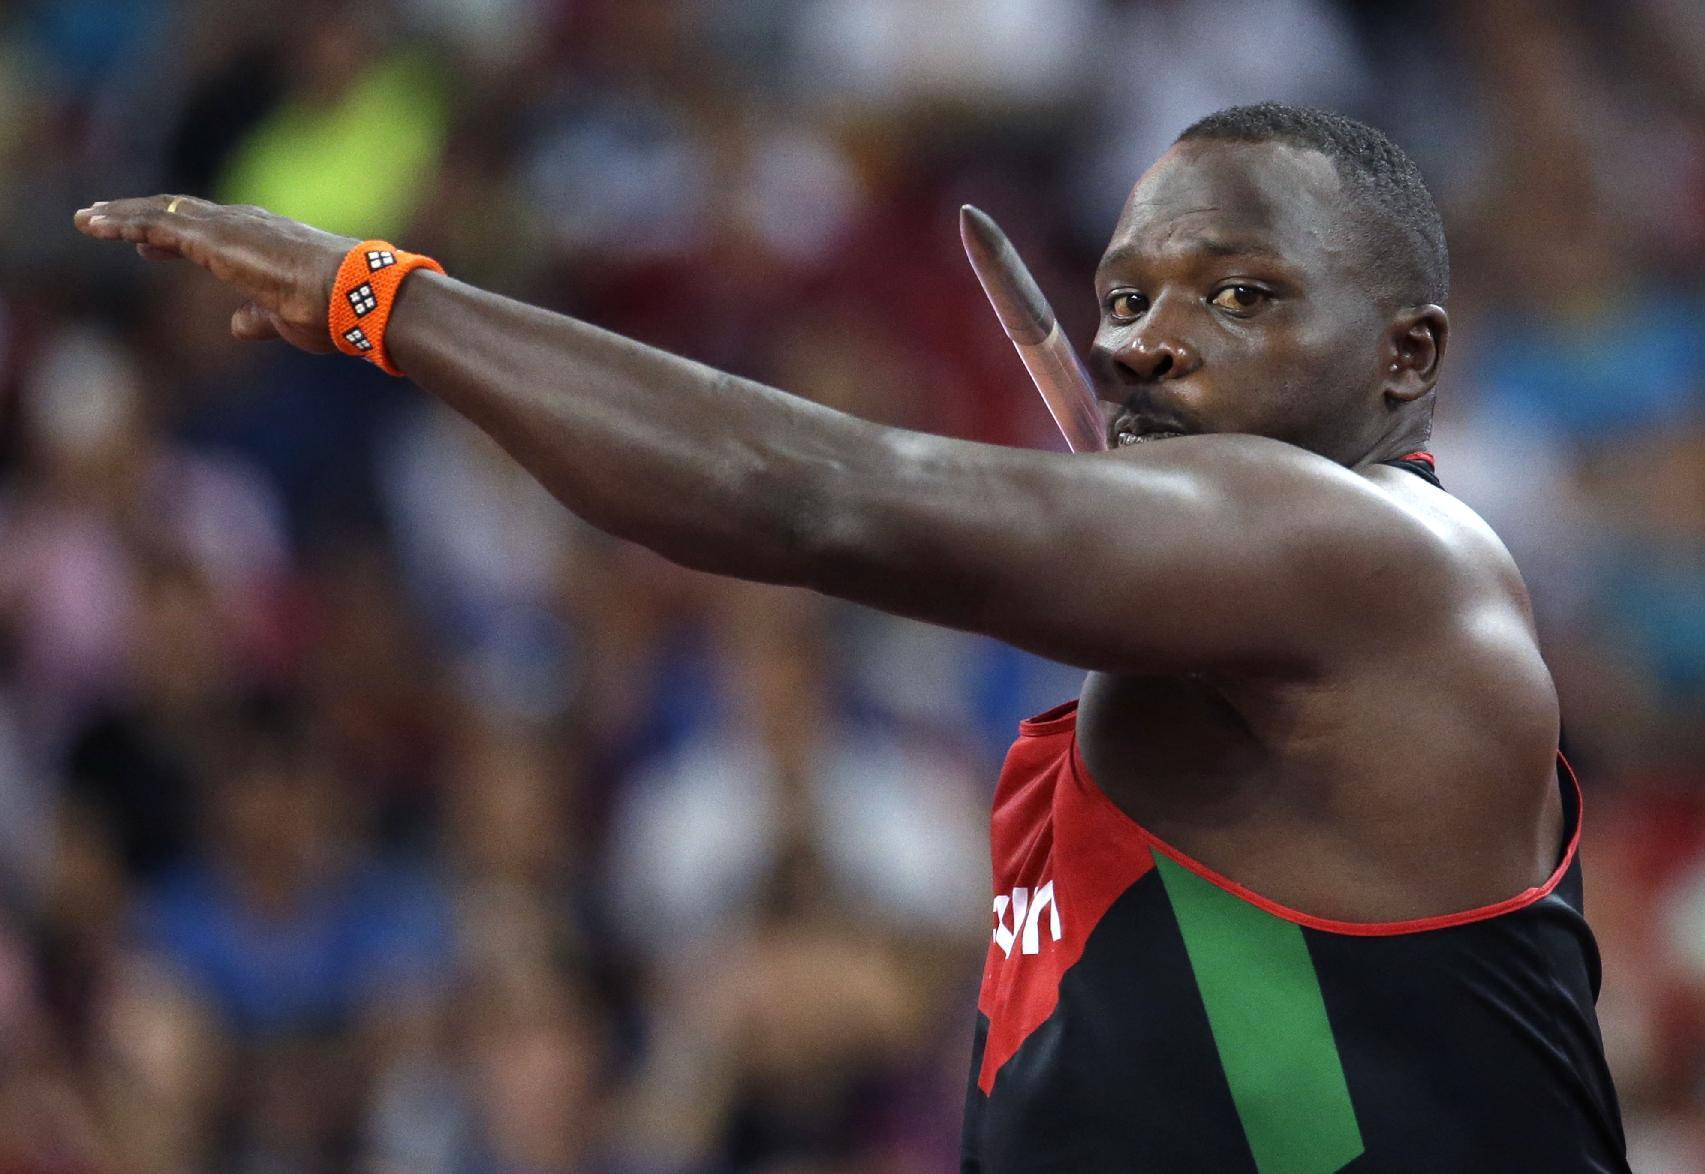 Kenya's historic win in javelin overshadowed by doping tests